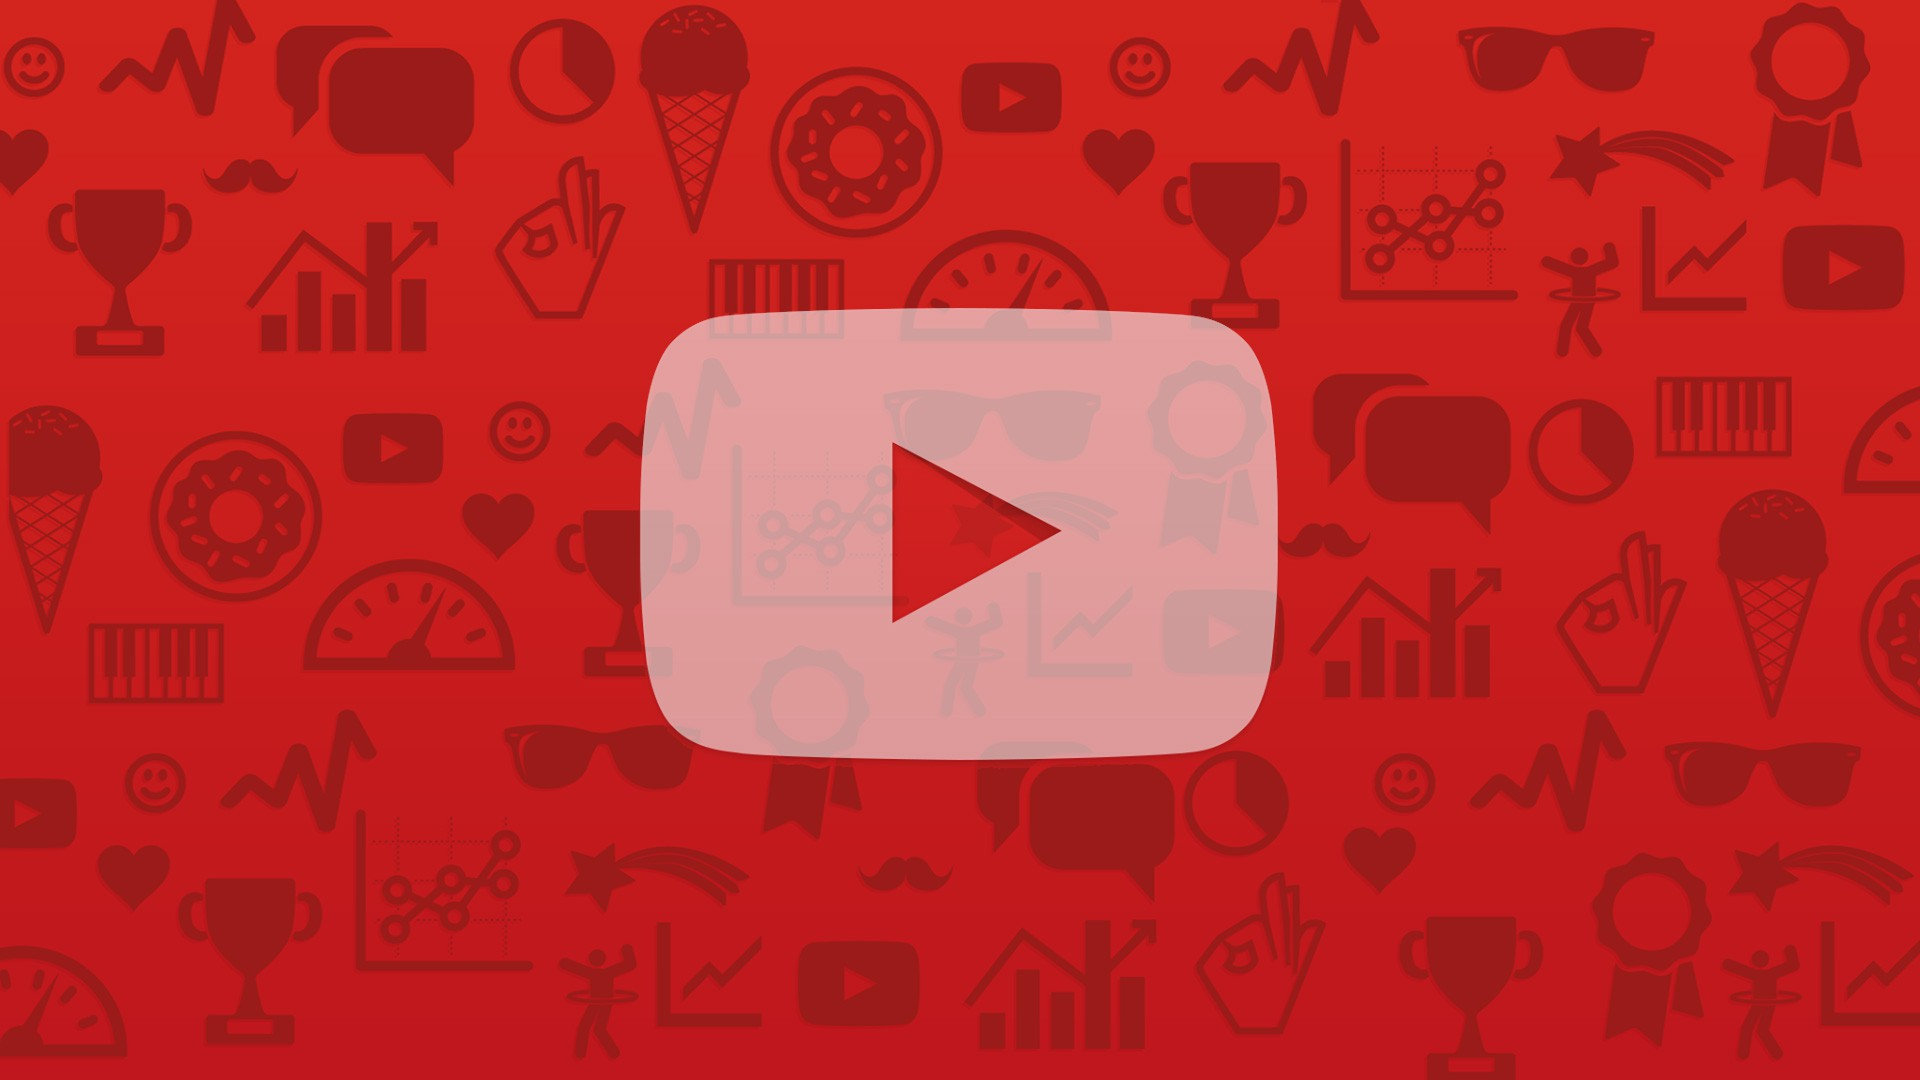 YouTube To Build Special Version Of YouTube For Pakistan